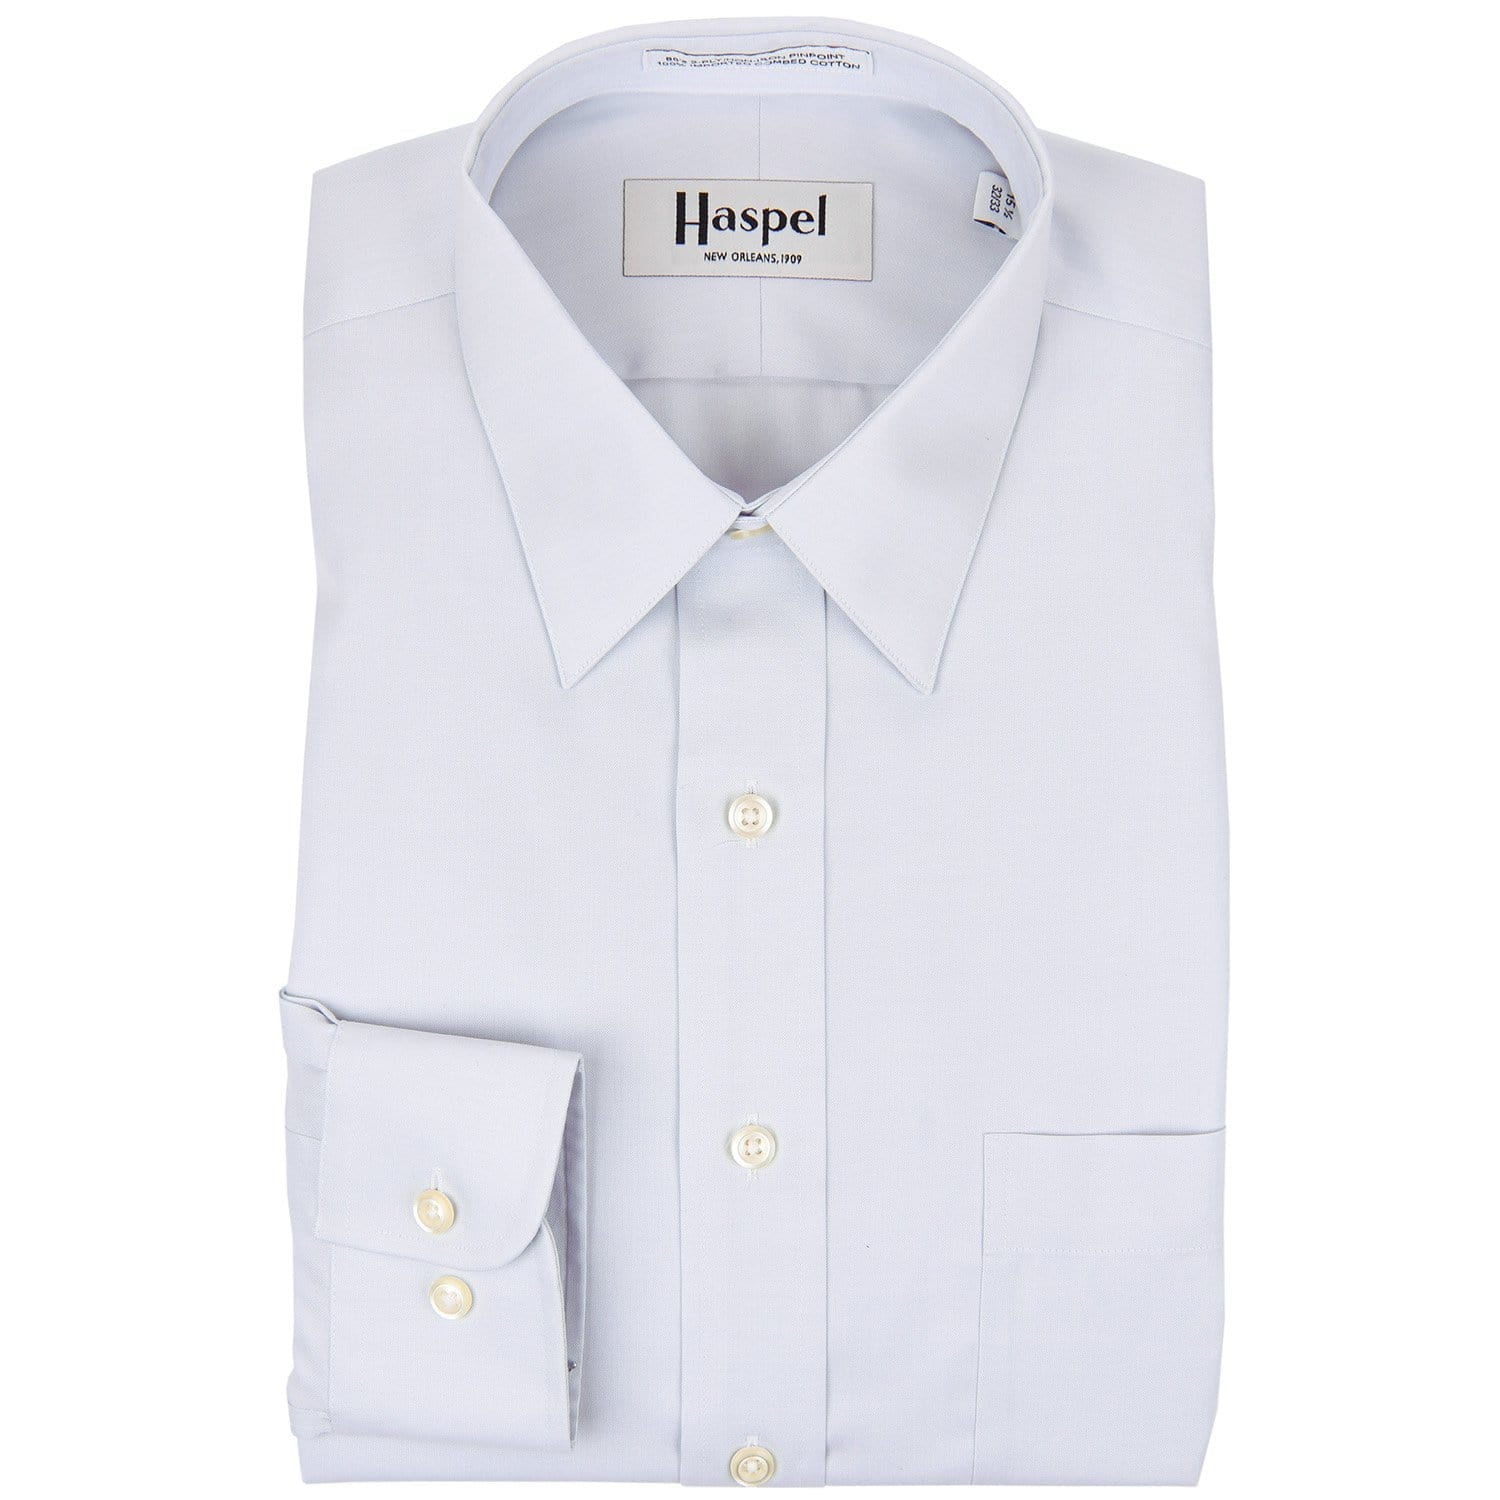 Grey/Silver Solid Dress Shirt - Haspel Clothing